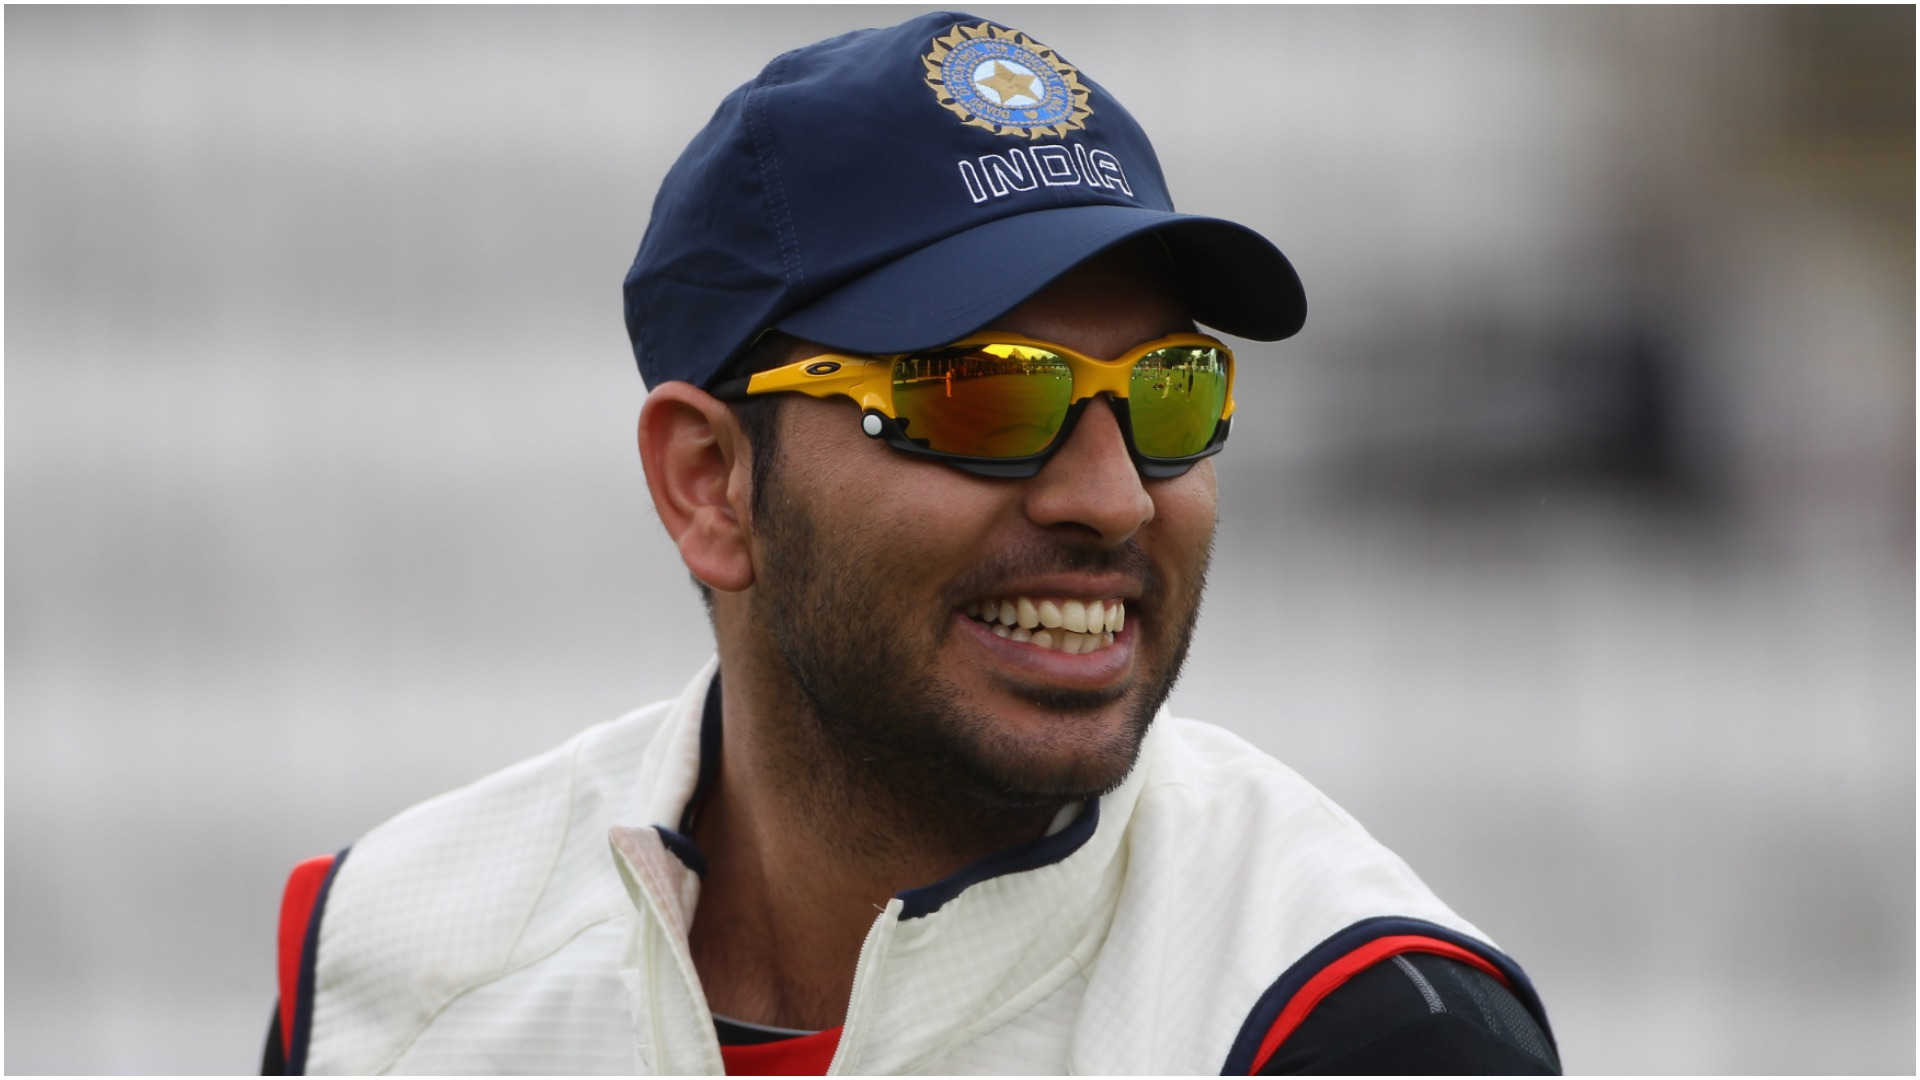 Yuvraj turns focus to cancer foundation after 'rollercoaster' career